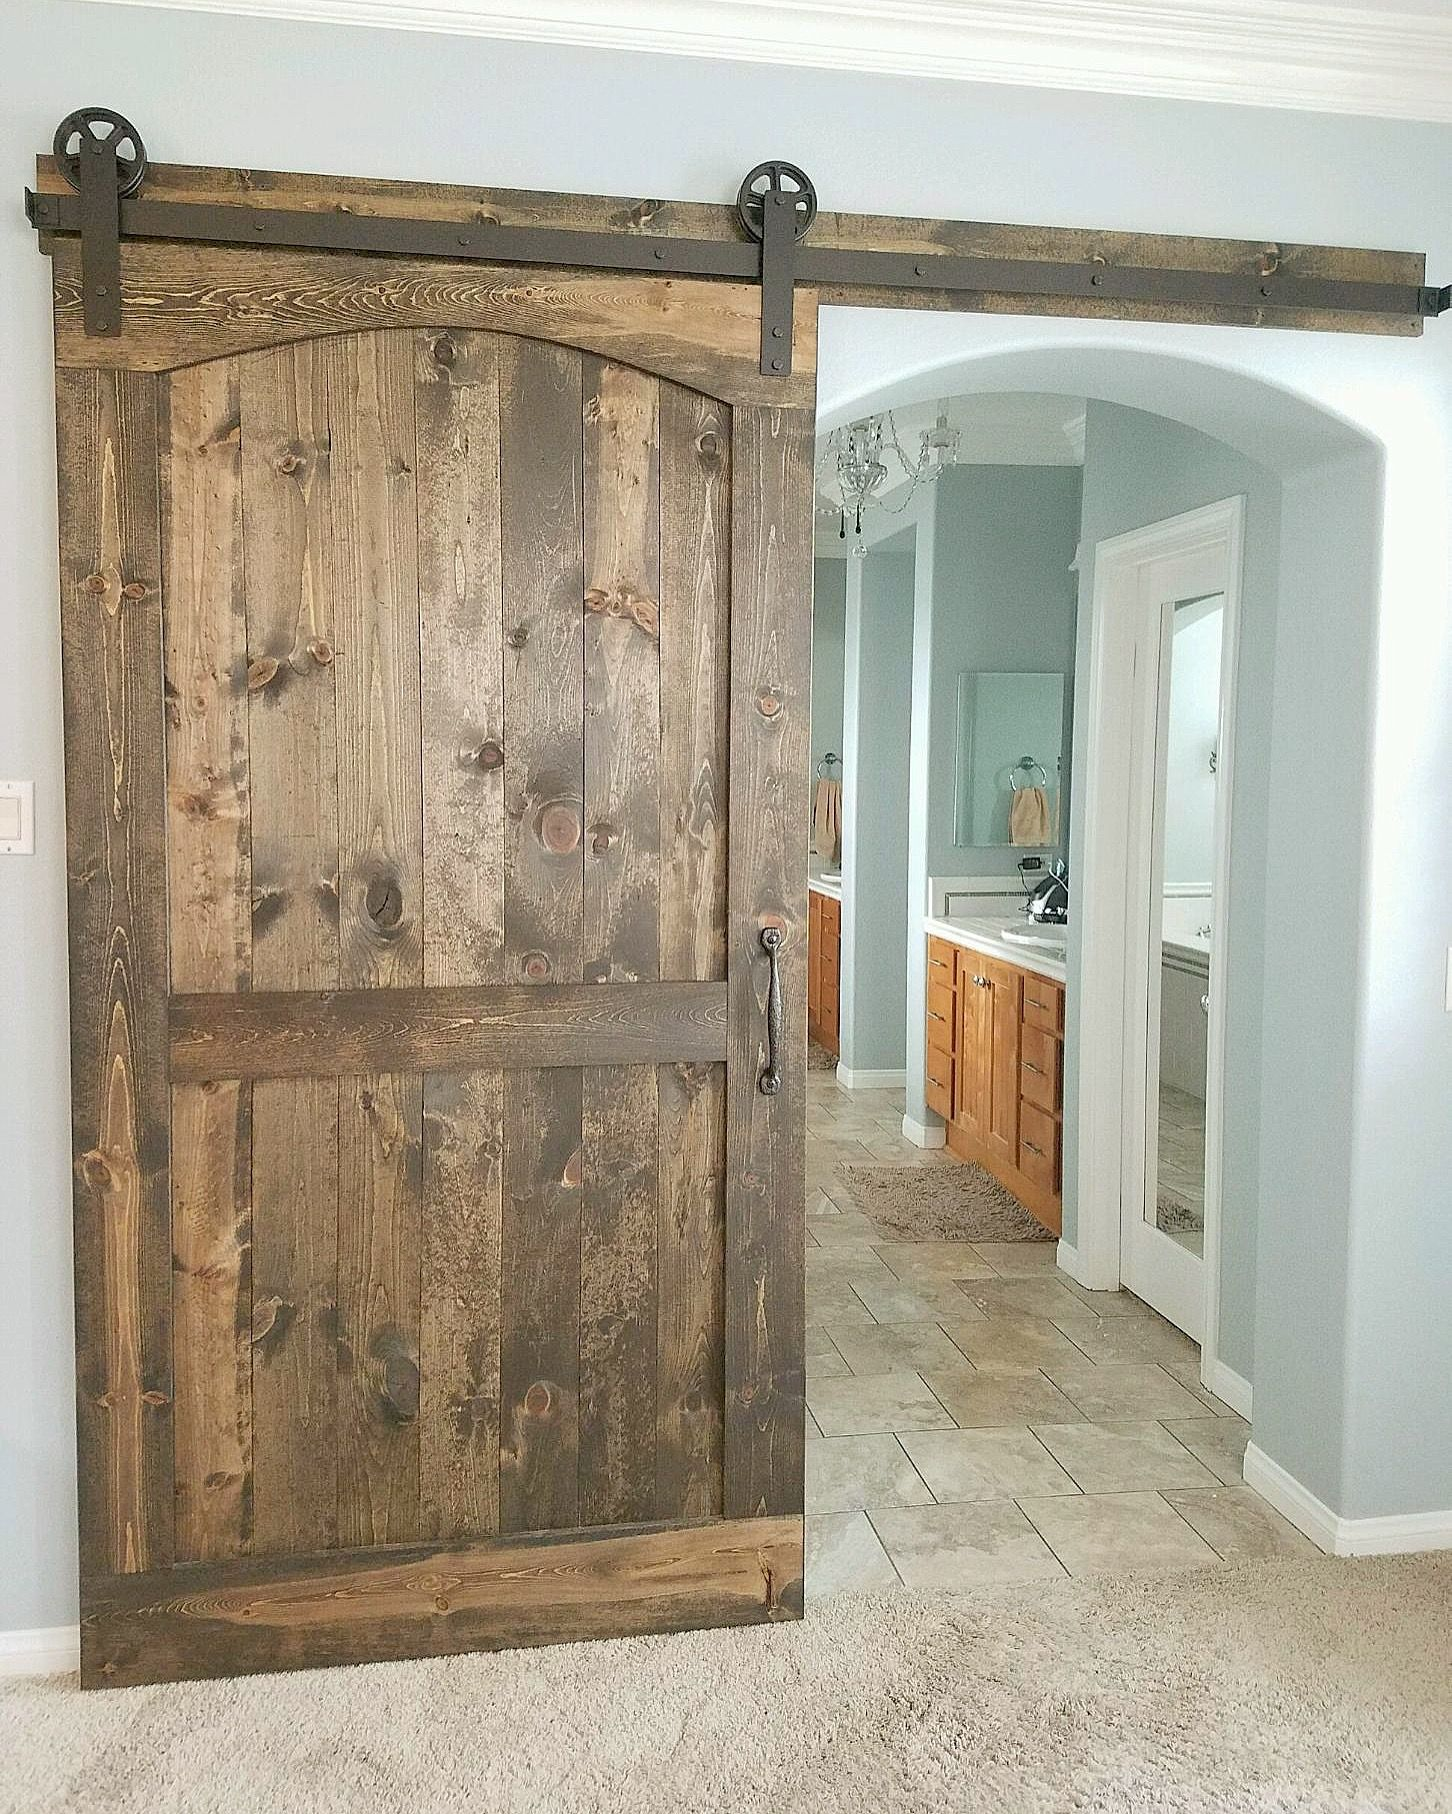 barns door of design ledged barn ideas home arched oak solid cottage wooden lovely beautiful